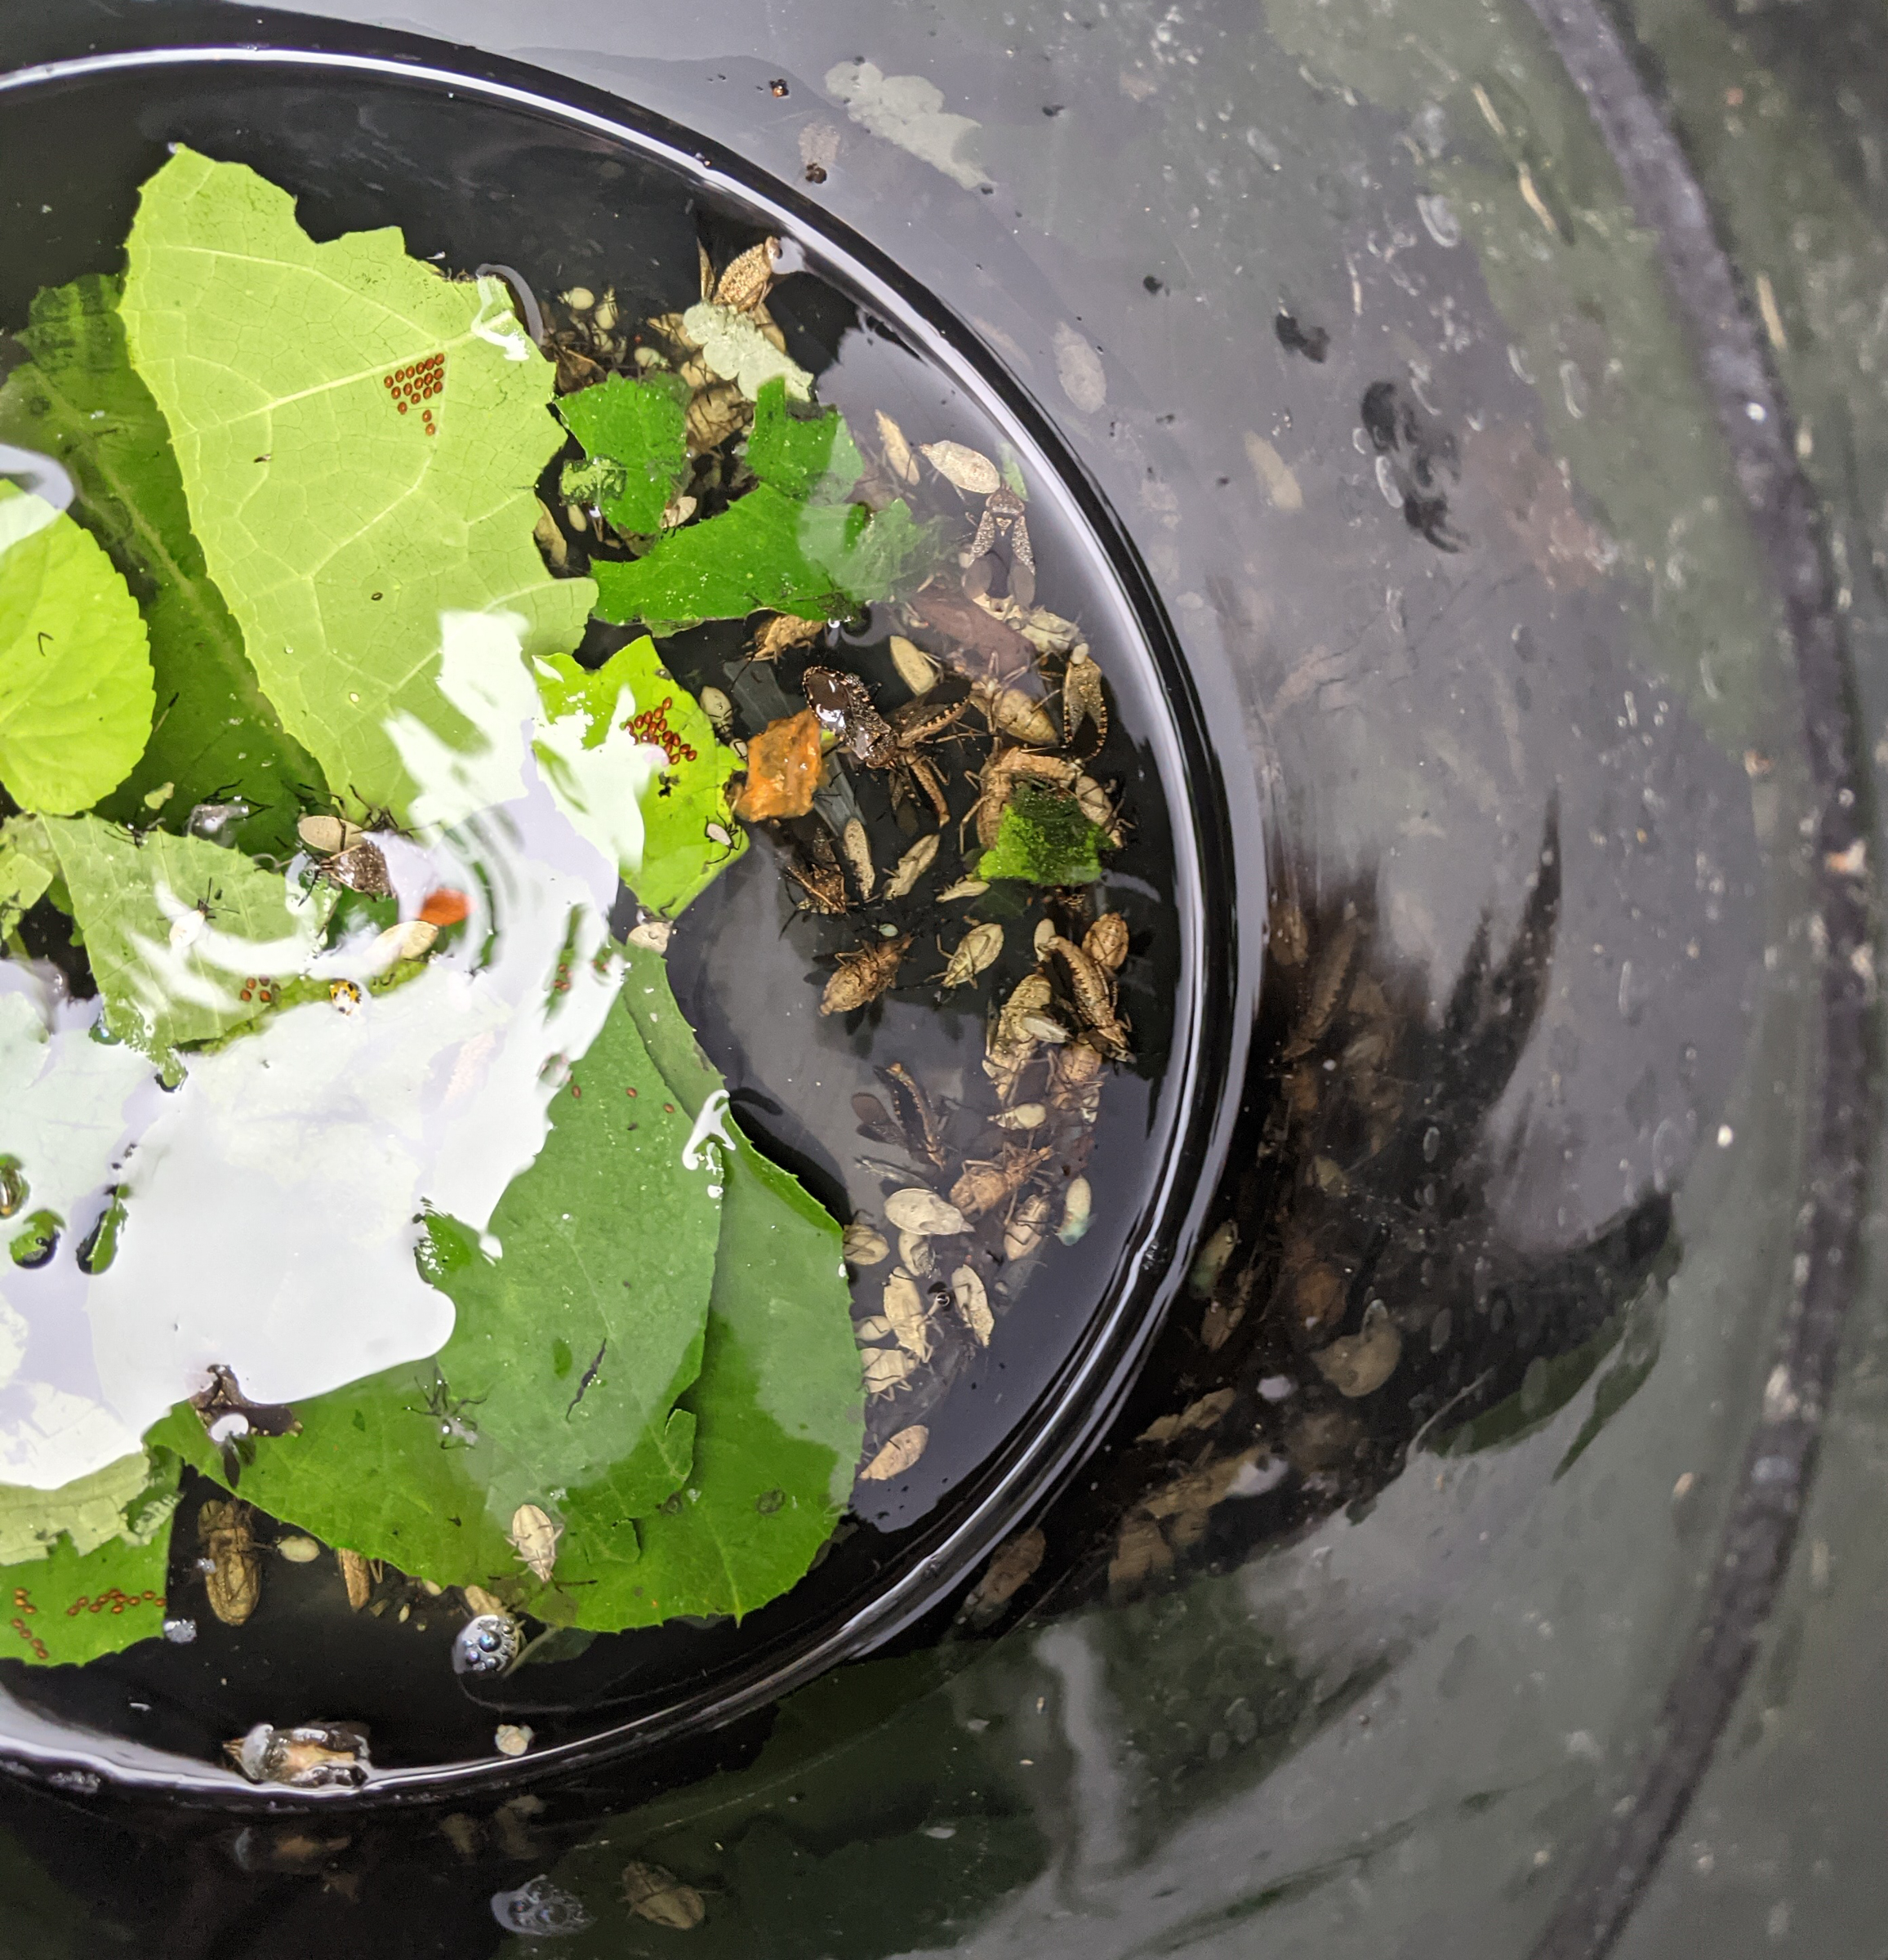 Killing squash bugs with soapy water is an old organic gardening trick- this squash bug control method takes it a step farther.